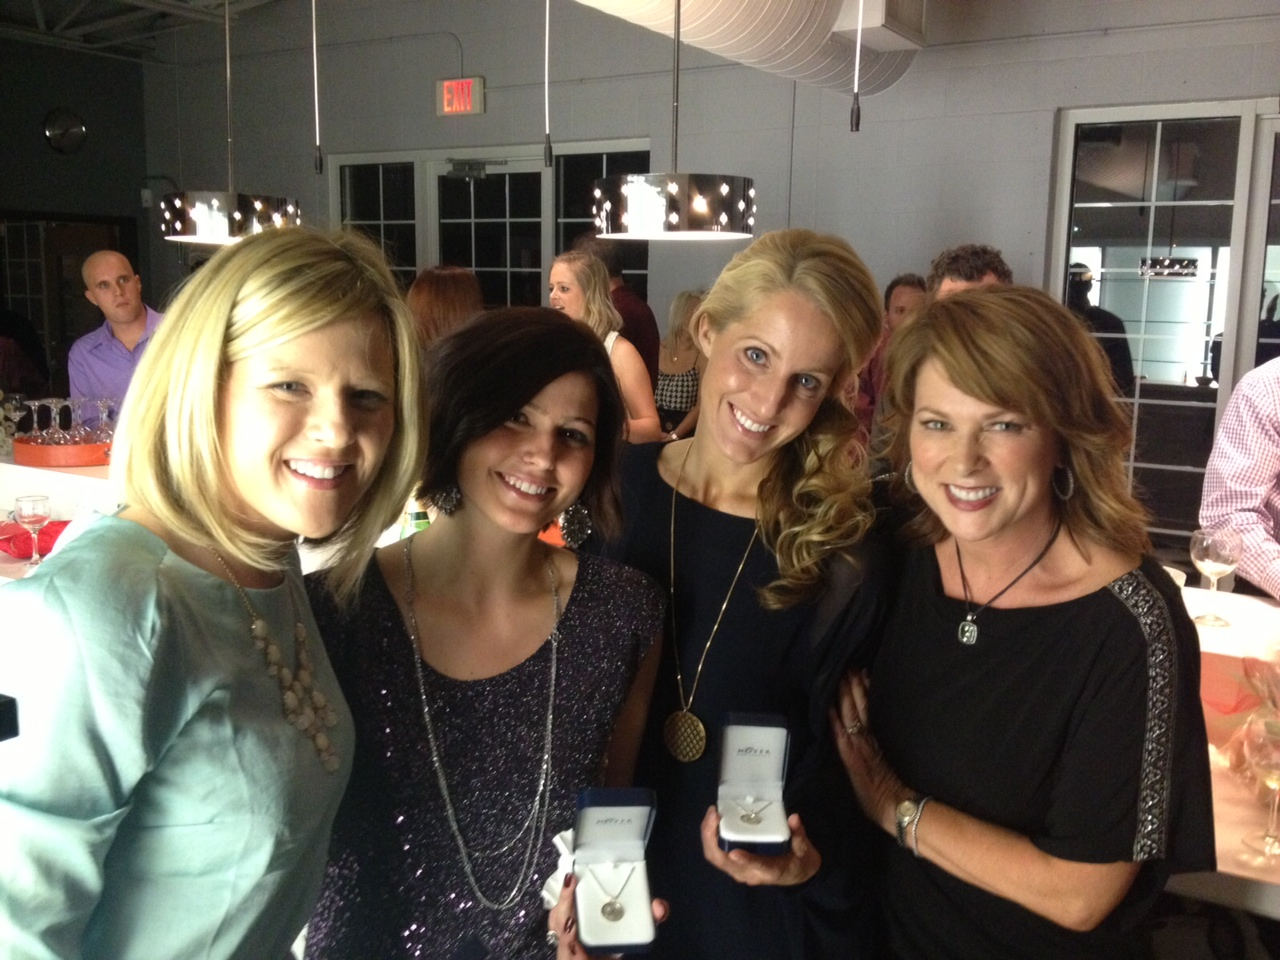 From left, Stylists Molly Vaught and Angela Bloehs, Vice President of Operations Christi Thompson and Owner Micki Stirsman